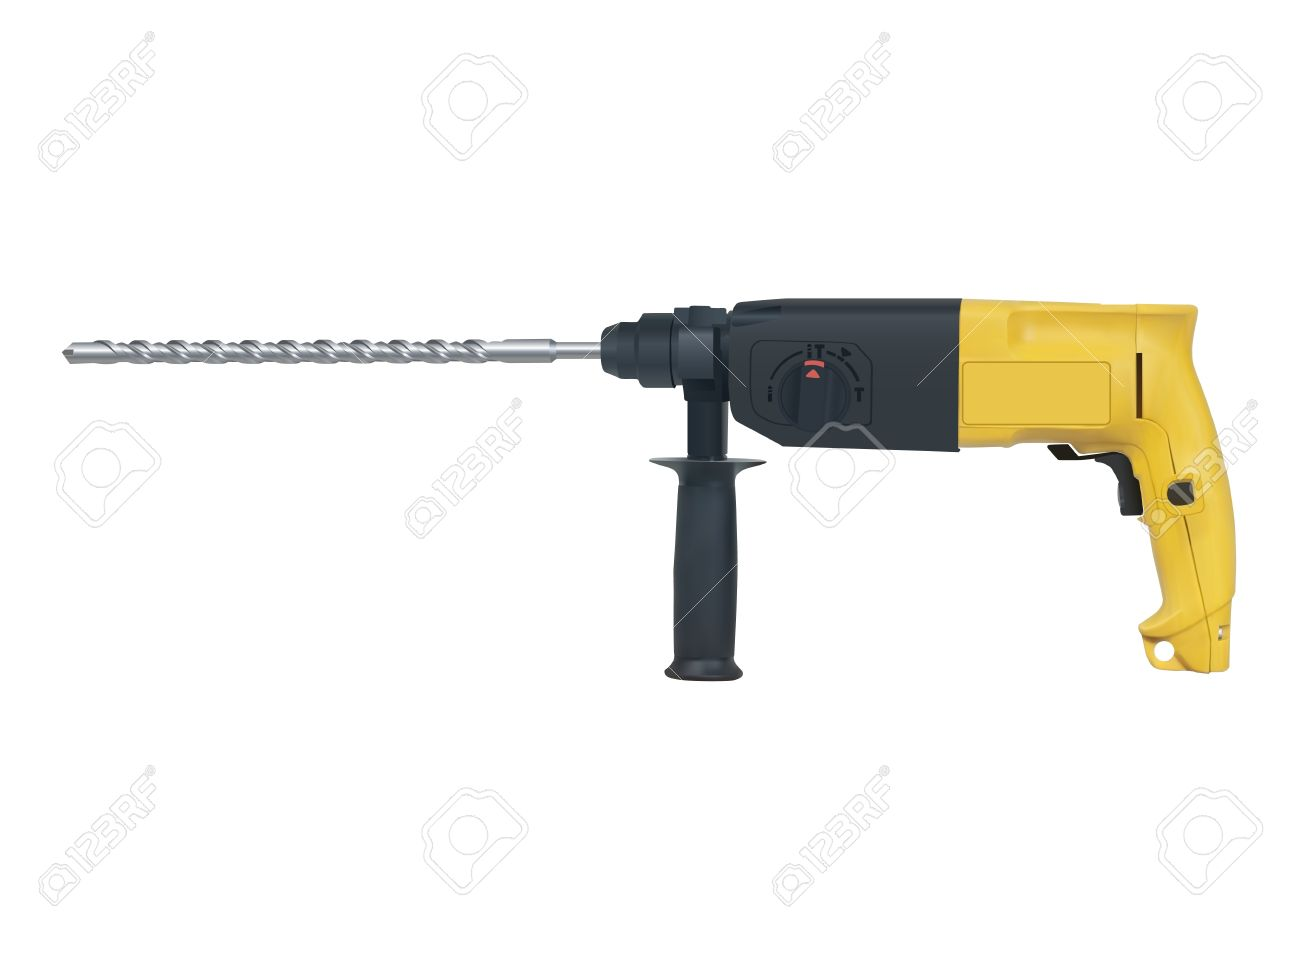 Rotary Hammer On A White Background Royalty Free Cliparts, Vectors.